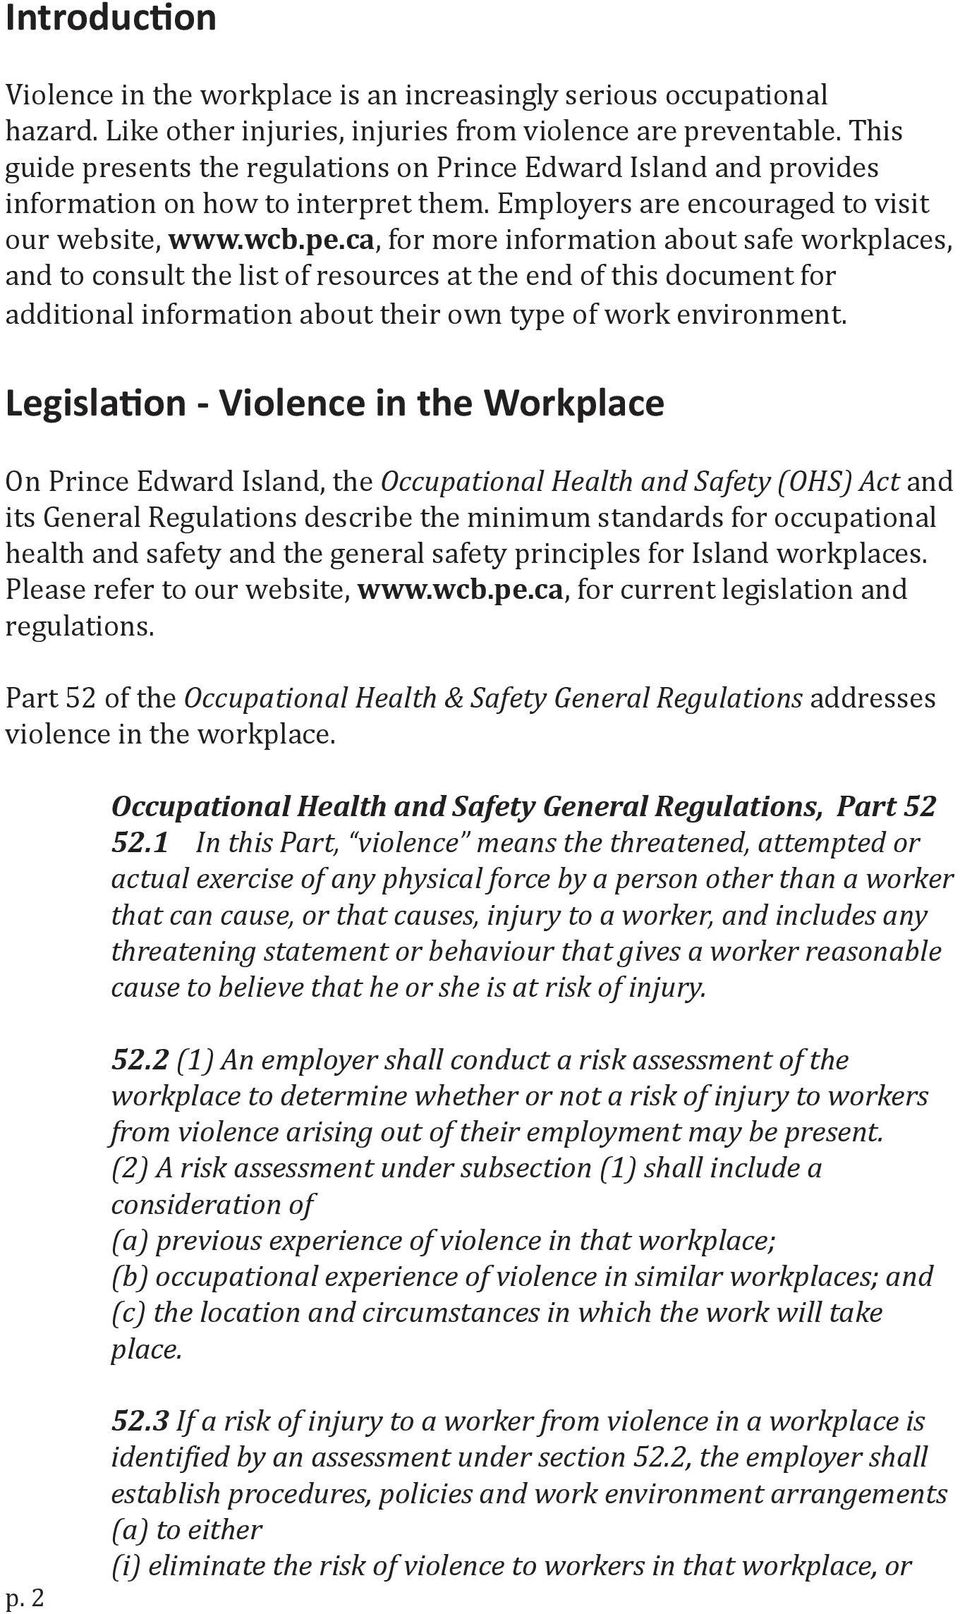 ca, for more information about safe workplaces, and to consult the list of resources at the end of this document for additional information about their own type of work environment.